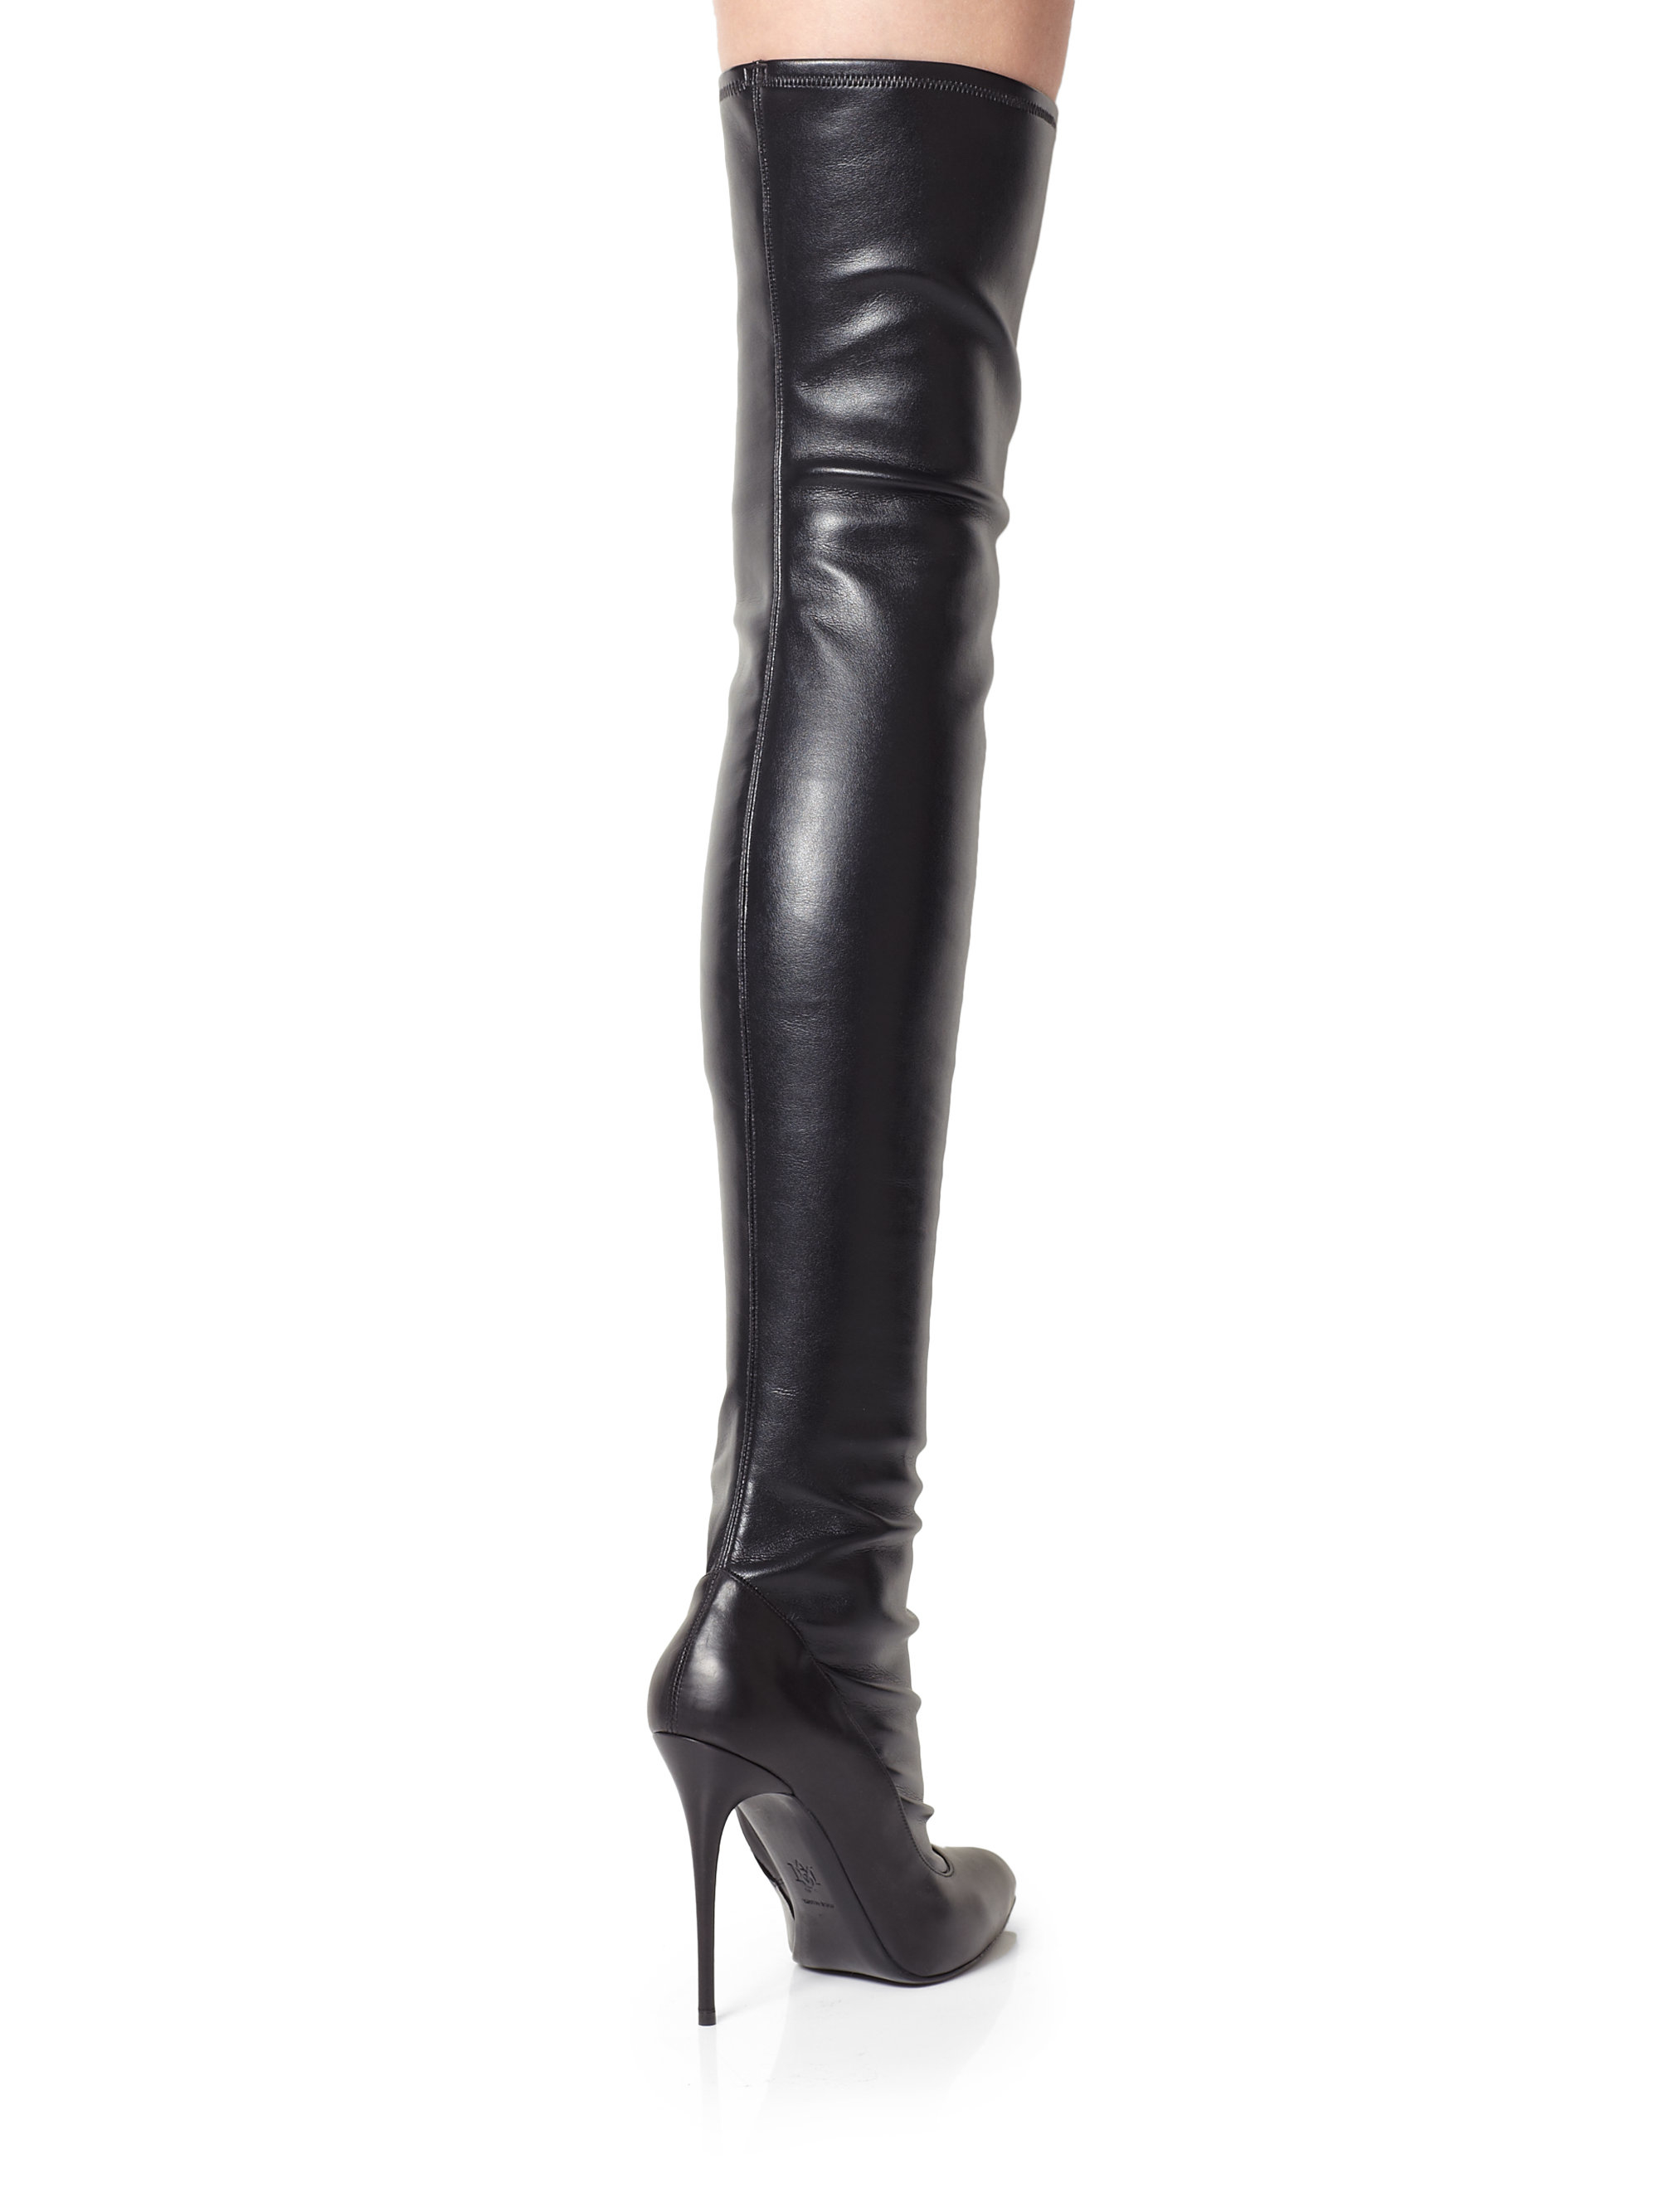 Alexander mcqueen Over-the-knee Stretch Leather Boots in Black | Lyst